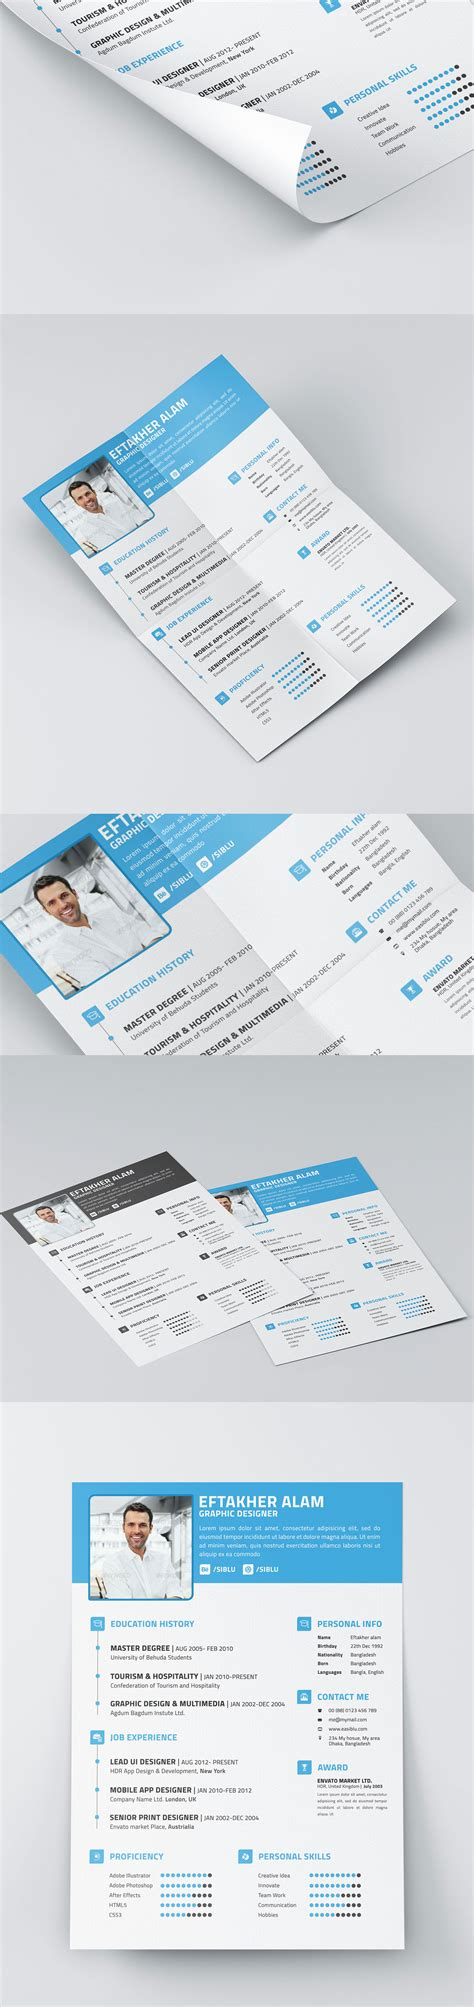 Free Indesign Business Card Template Behance by Free Resume Cv Business Card Templates On Behance